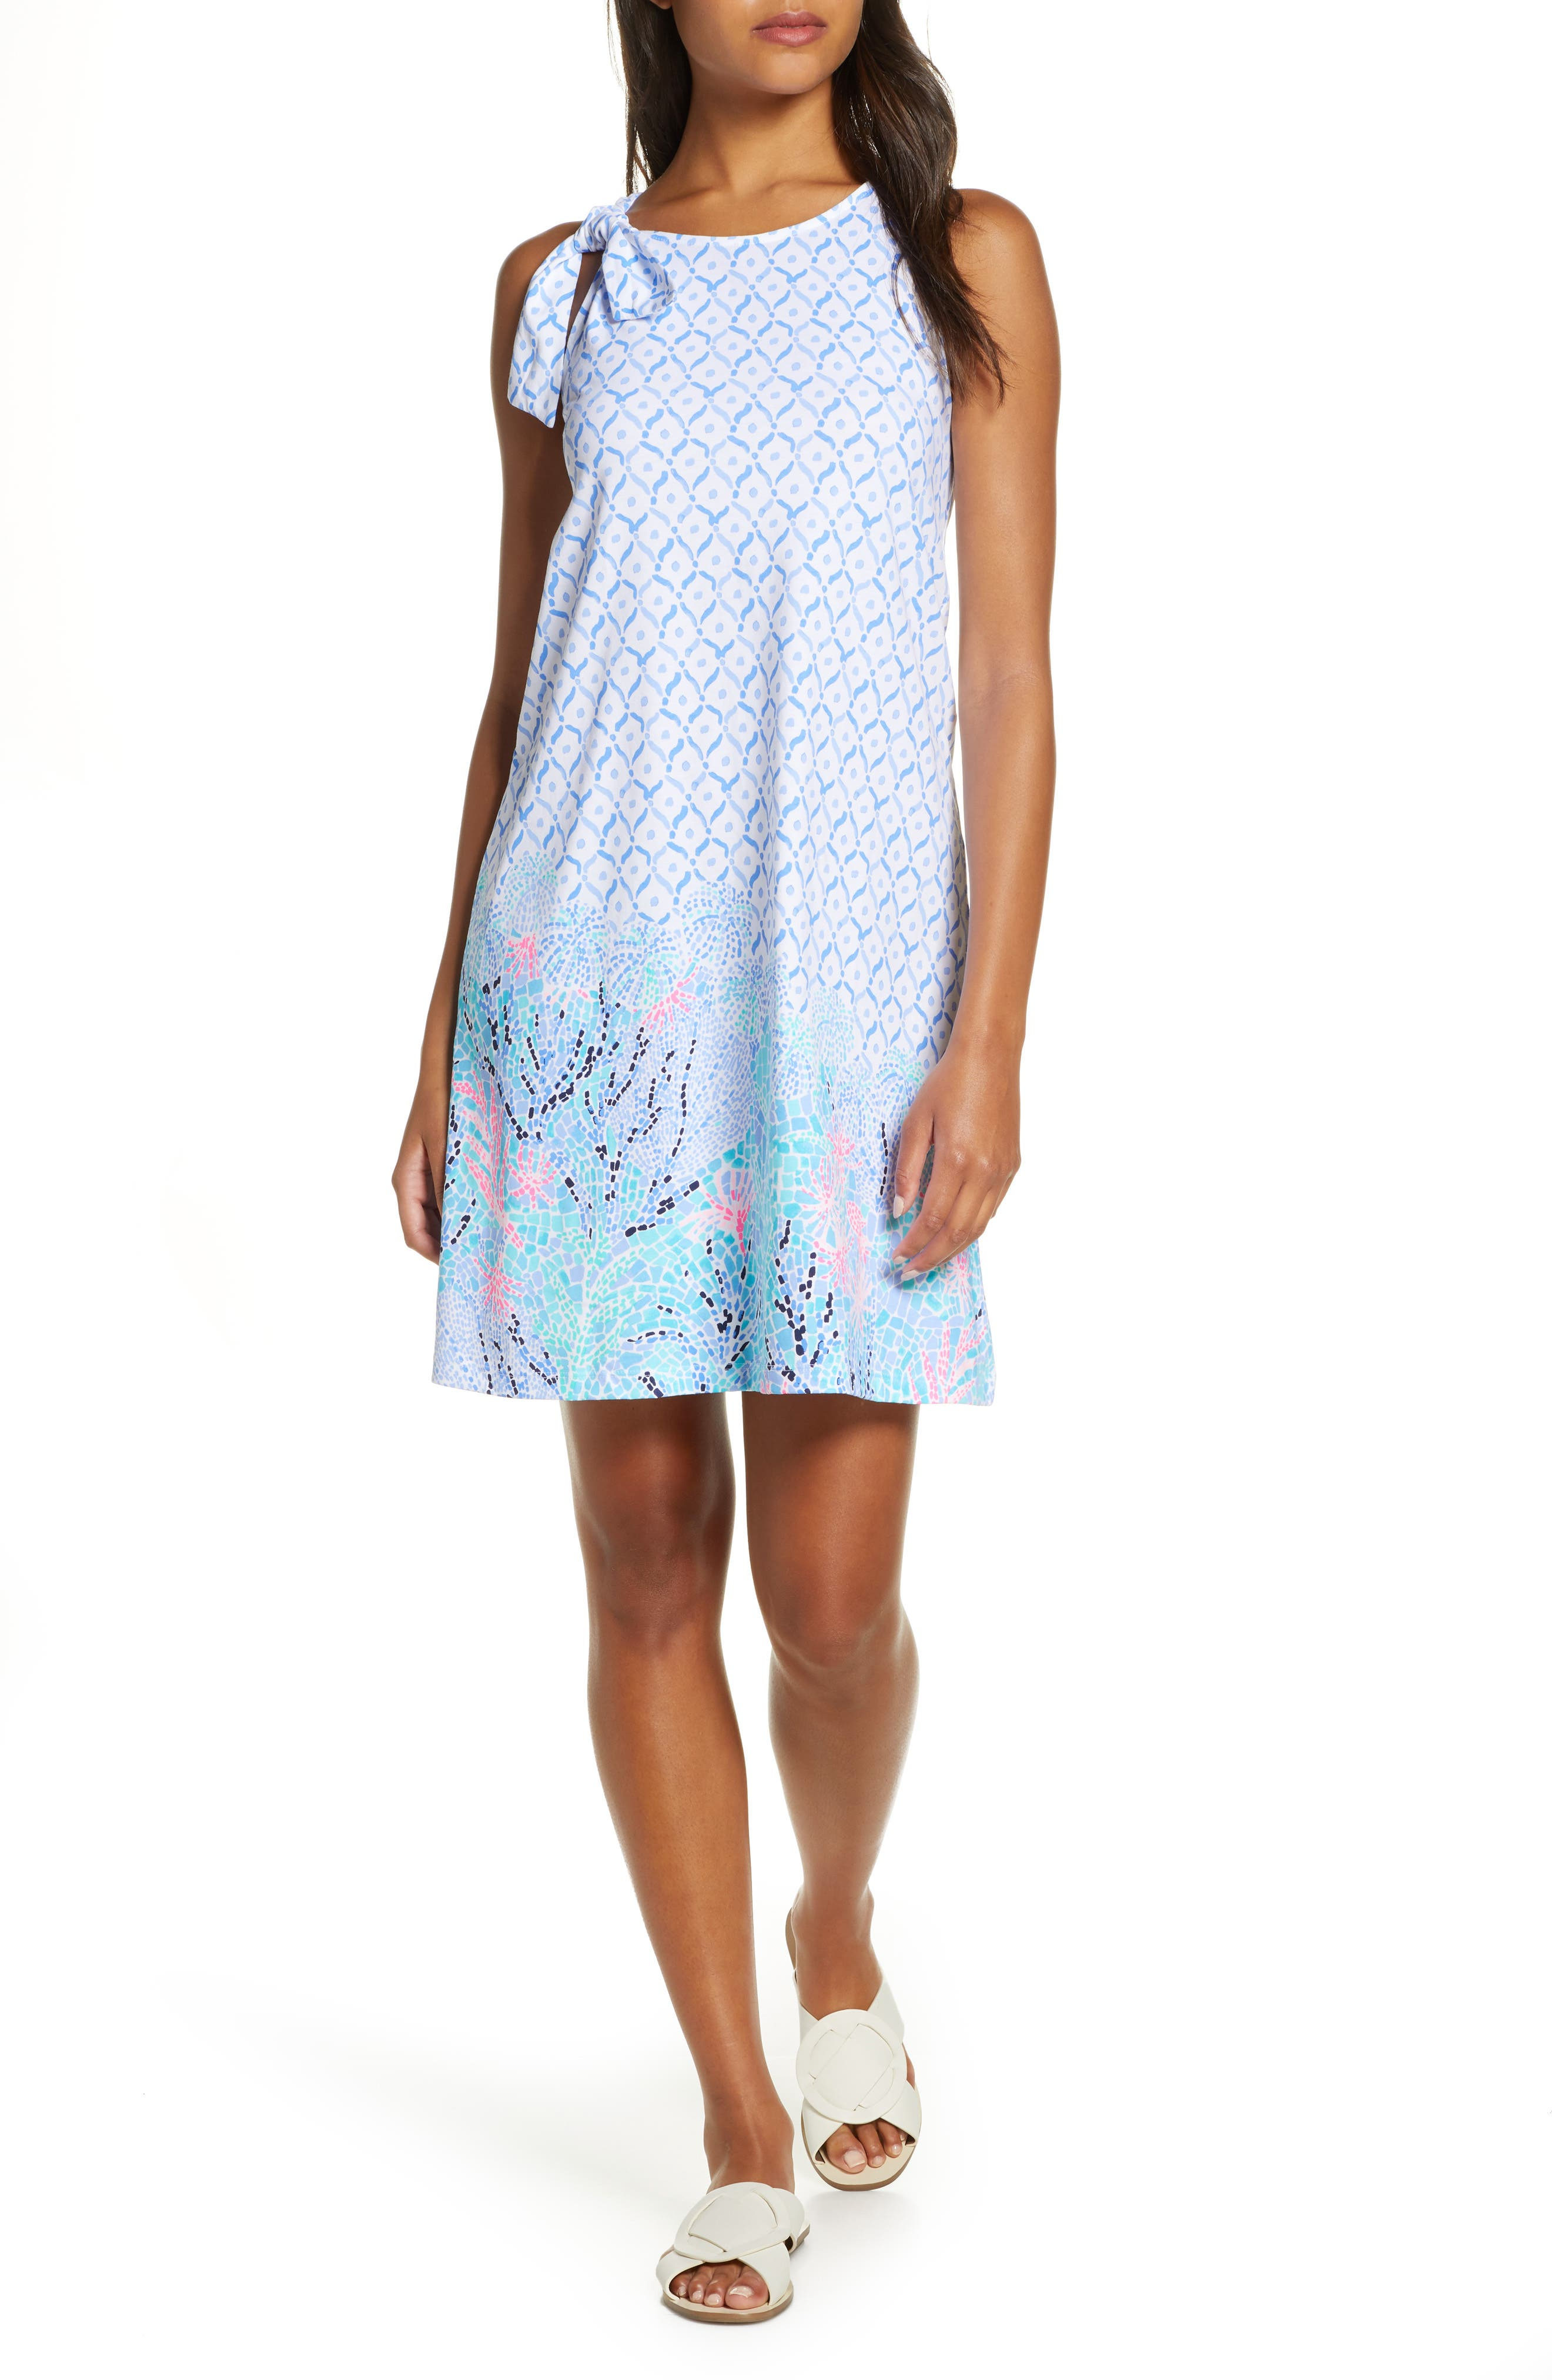 ISBN 9780023299995 product image for Women's Lilly Pulitzer Luella Tie Strap Shift Sundress | upcitemdb.com